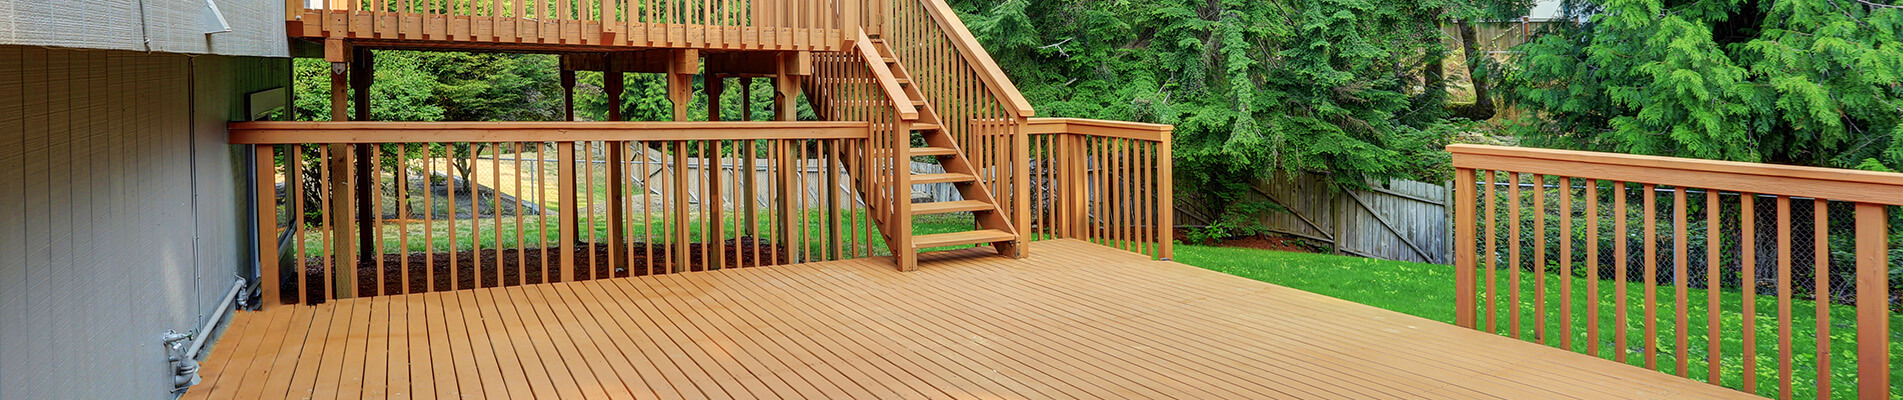 twin-cities-deck-design-construction.jpg